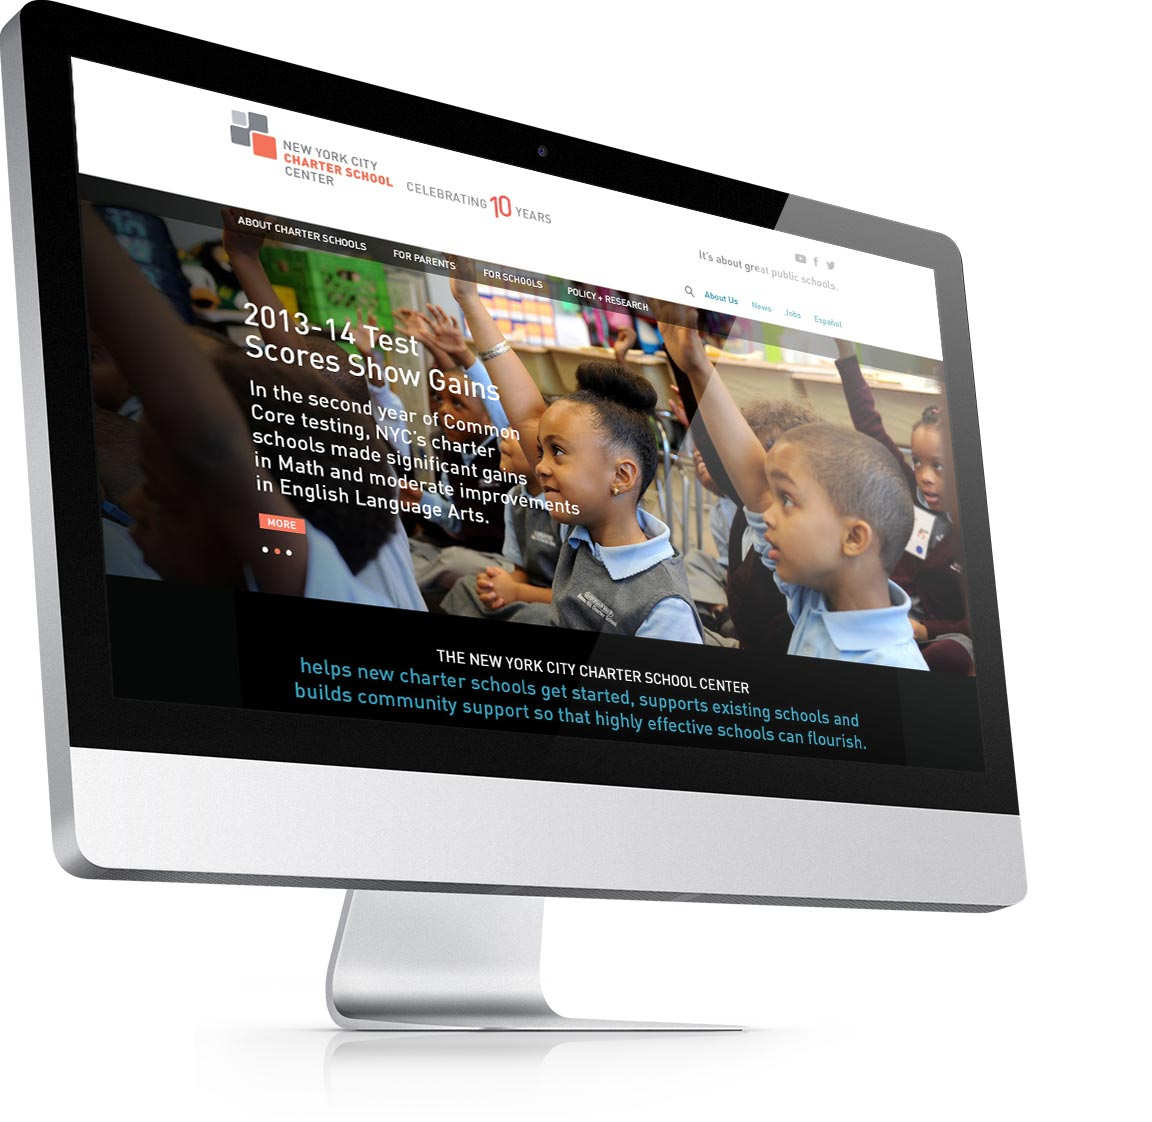 Design of the homepage for the nonprofit website NY City Charter School Center seen on an iMAC.